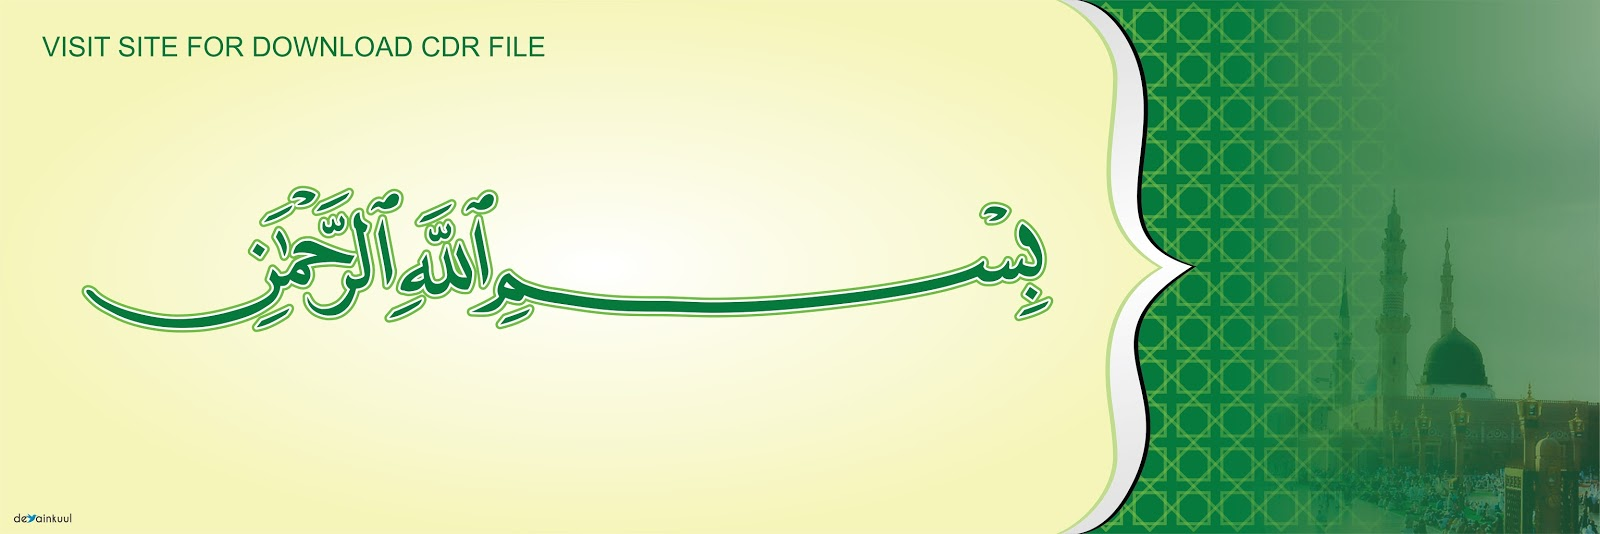 Background Spanduk Green Islamic Free Download Cdr Desainkuul